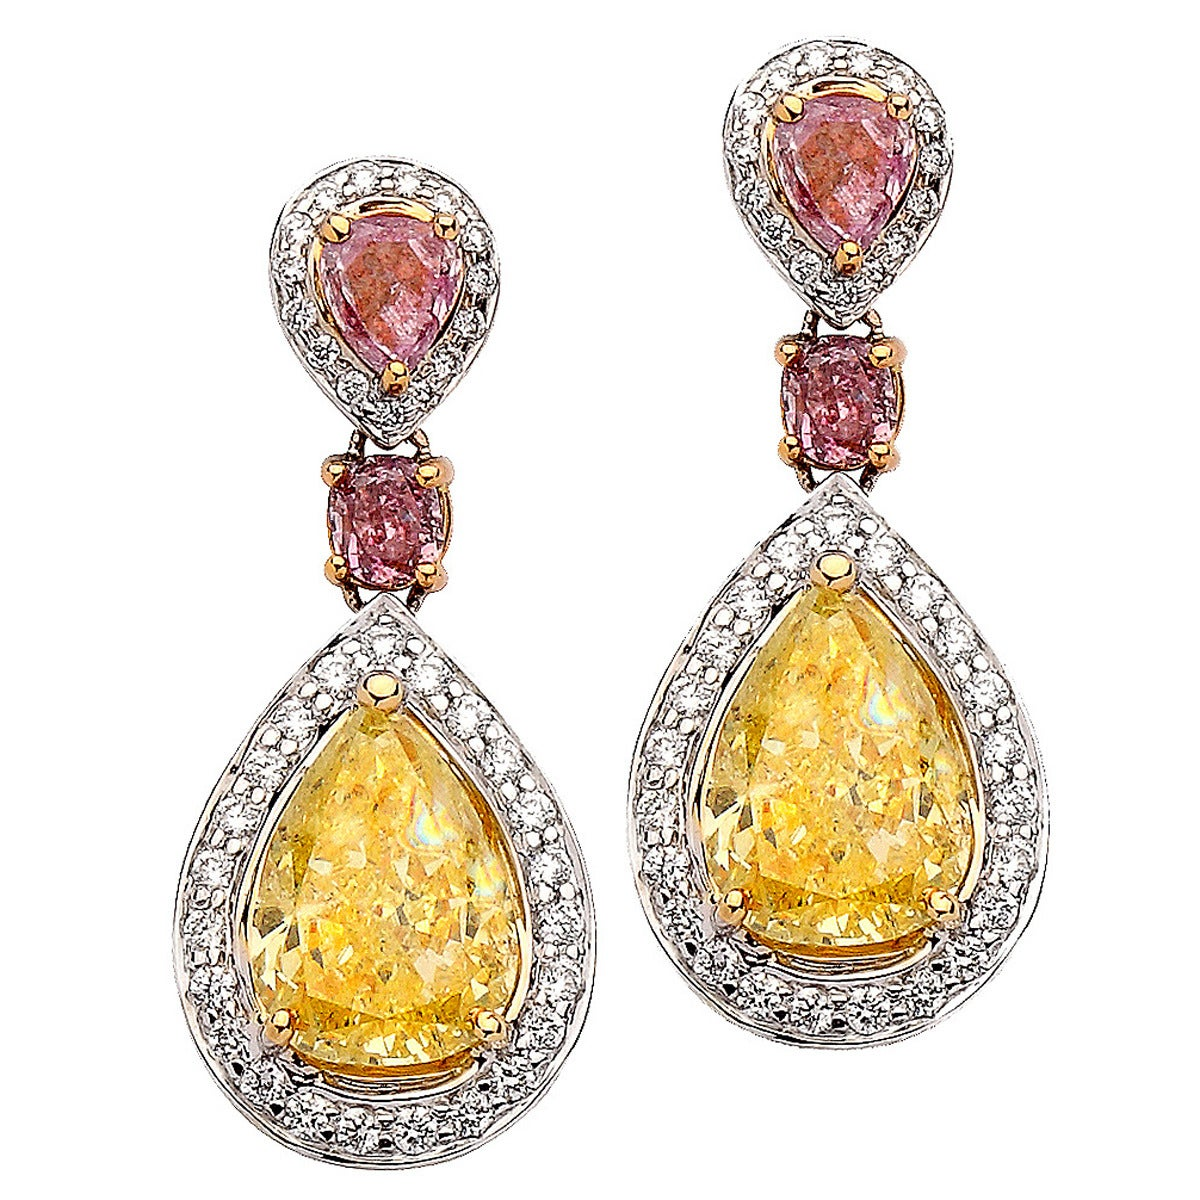 3.17 Carat GIA Certified Diamond Gold Earrings For Sale